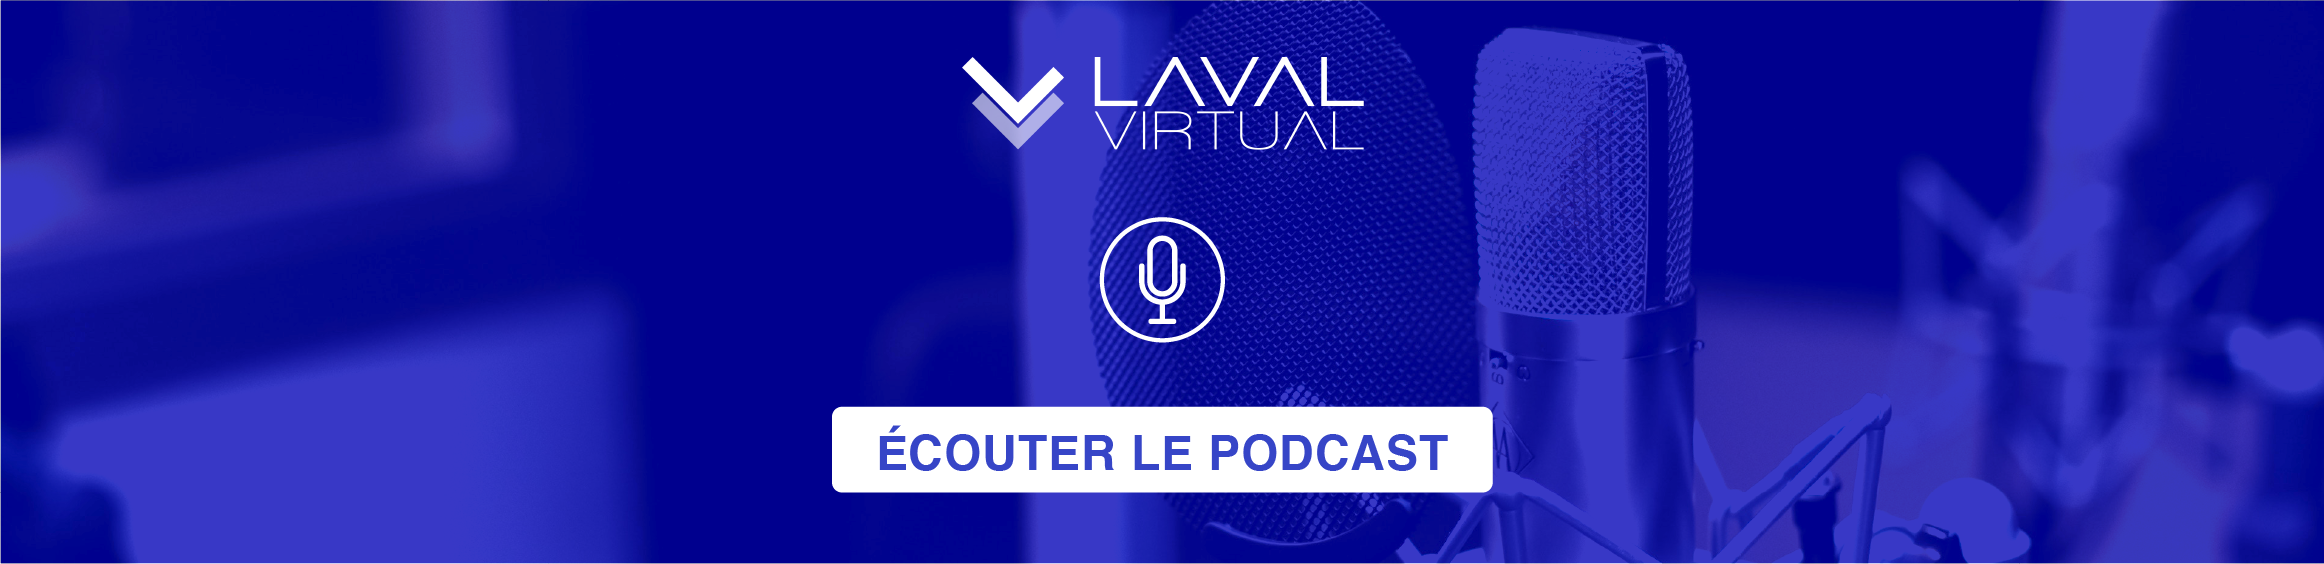 Ecouter le podcast Laval Virtual